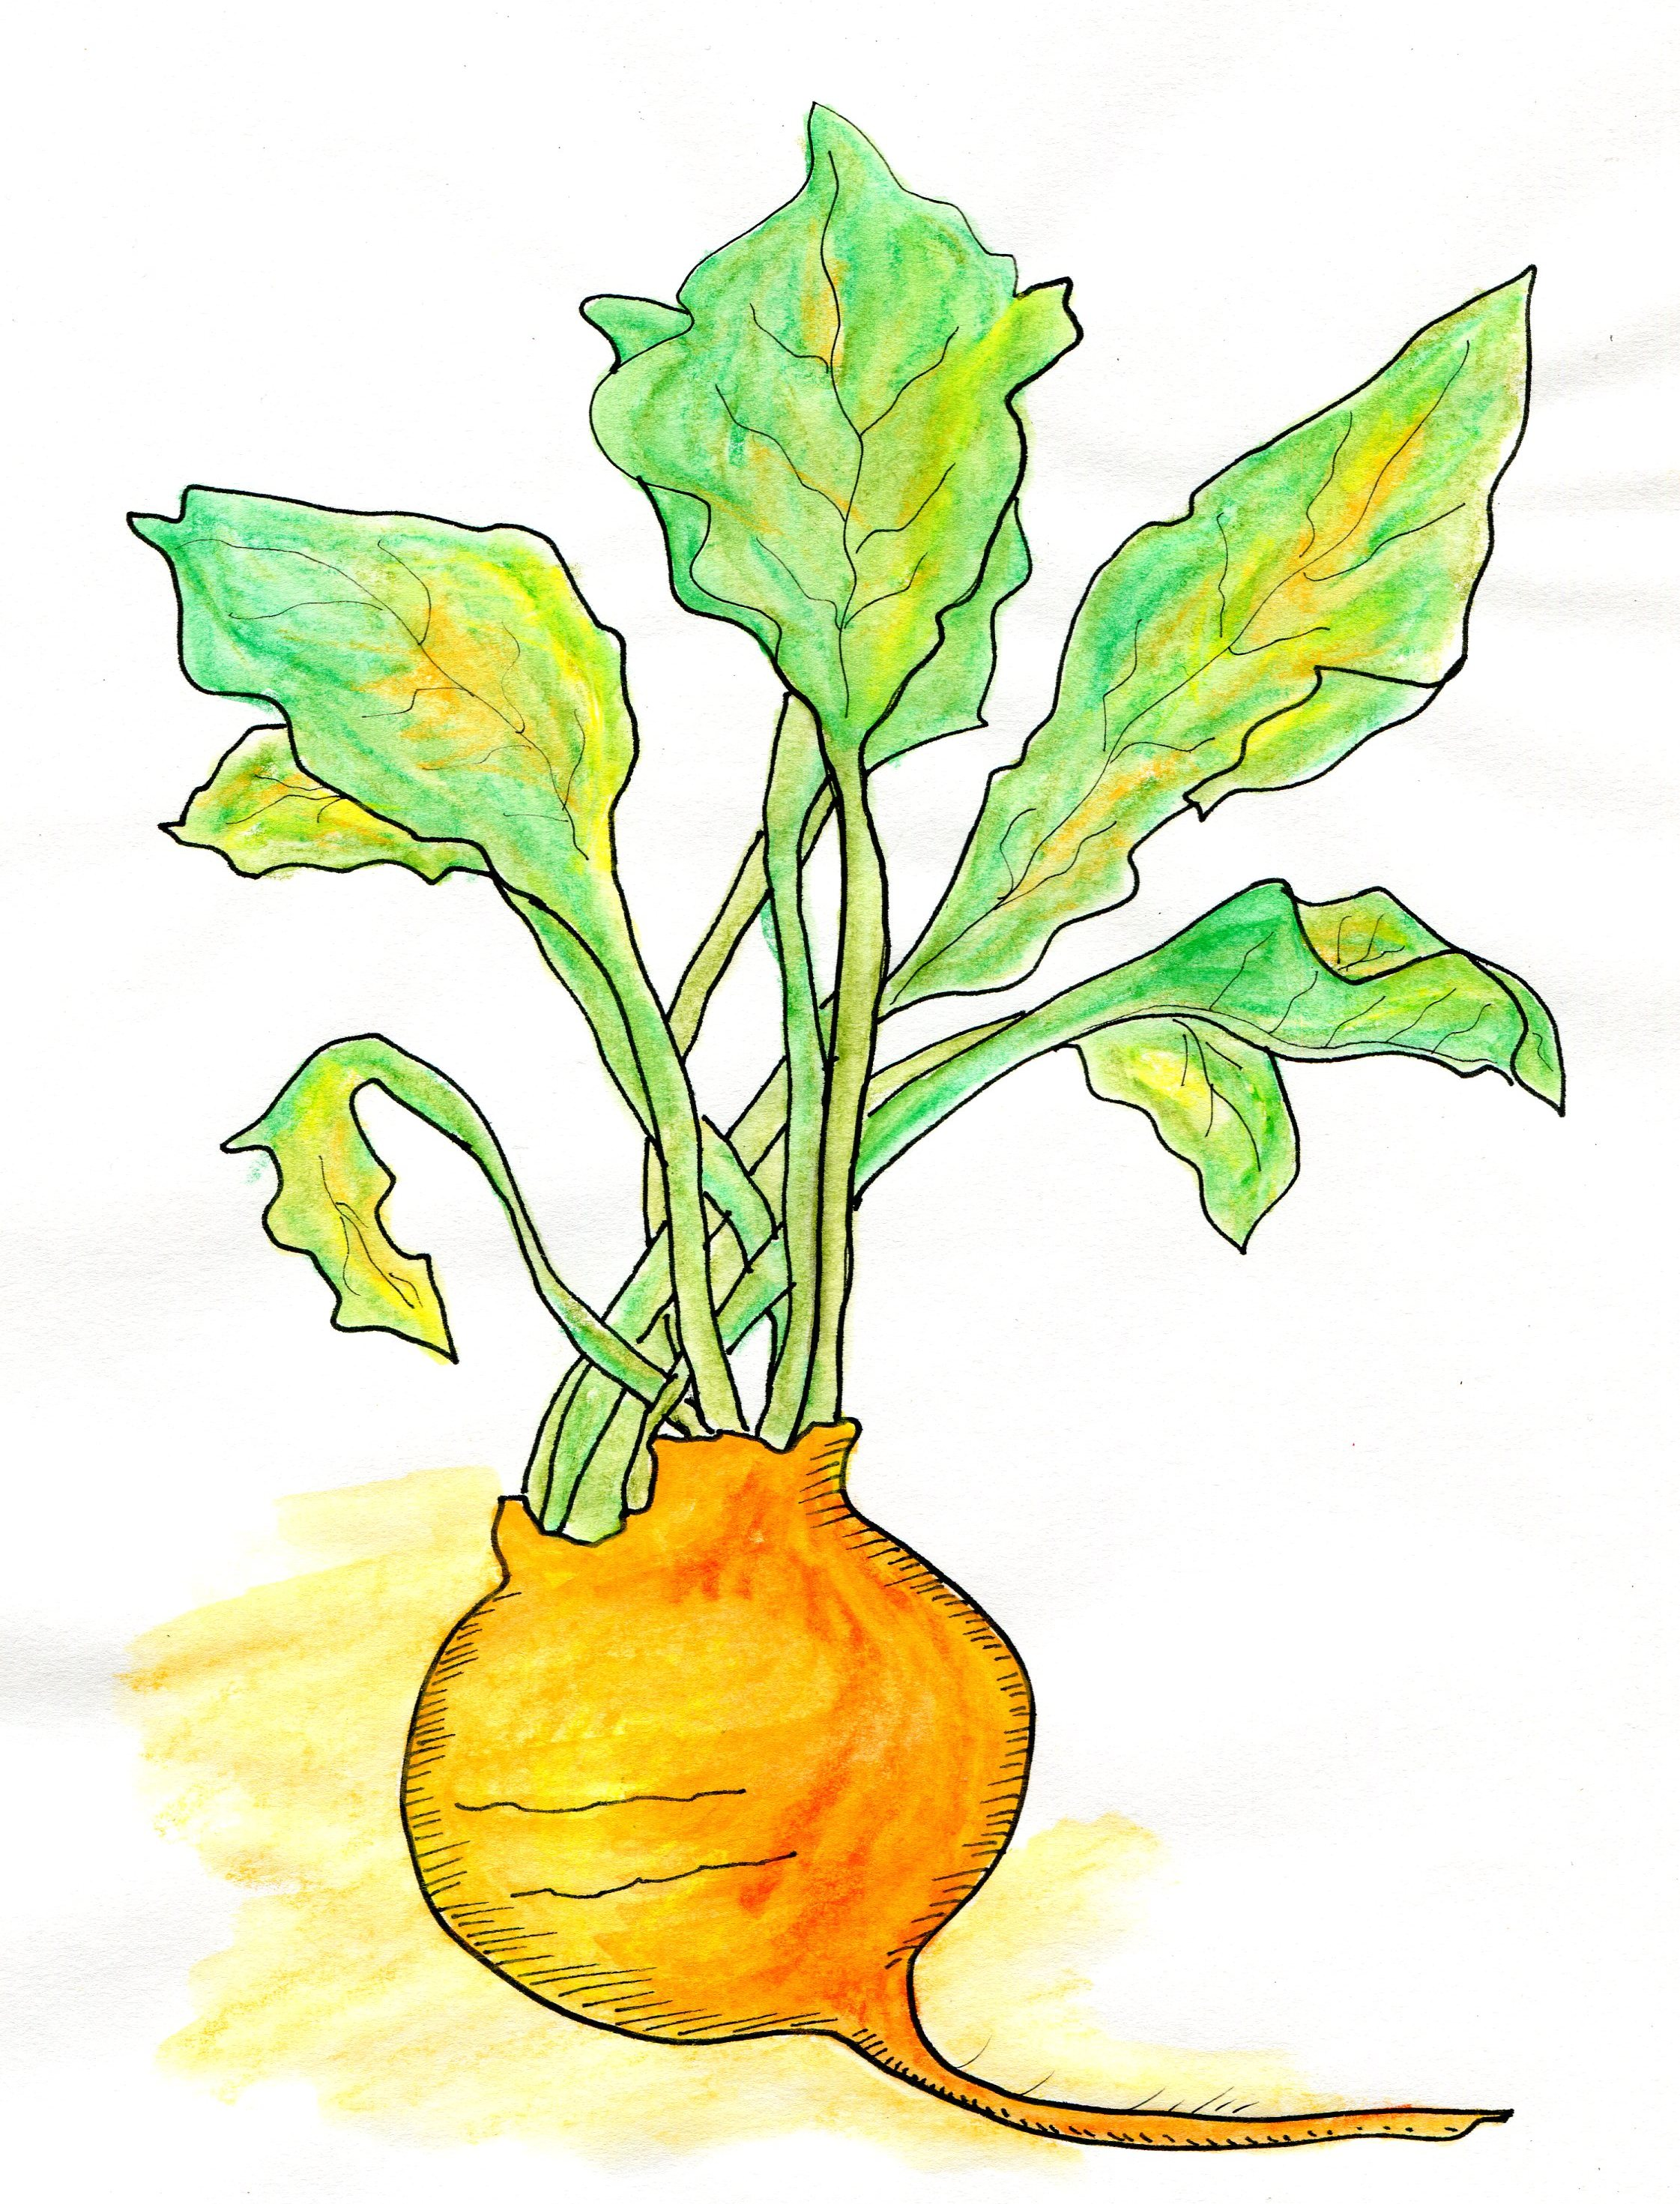 "A woman who was starting a personal chefing business in her new location asked for an image of a golden beet because that was what she wanted to call her business. ""Make it look earthy,"" she said, ""organic, not too groomed. With a bit of wildness, so it looks real."" I did a sketch, sent it to her, got and integrated her feedback — and voila! a golden beet for her logo. ""I love it!"" she declared. Price: $275 -"